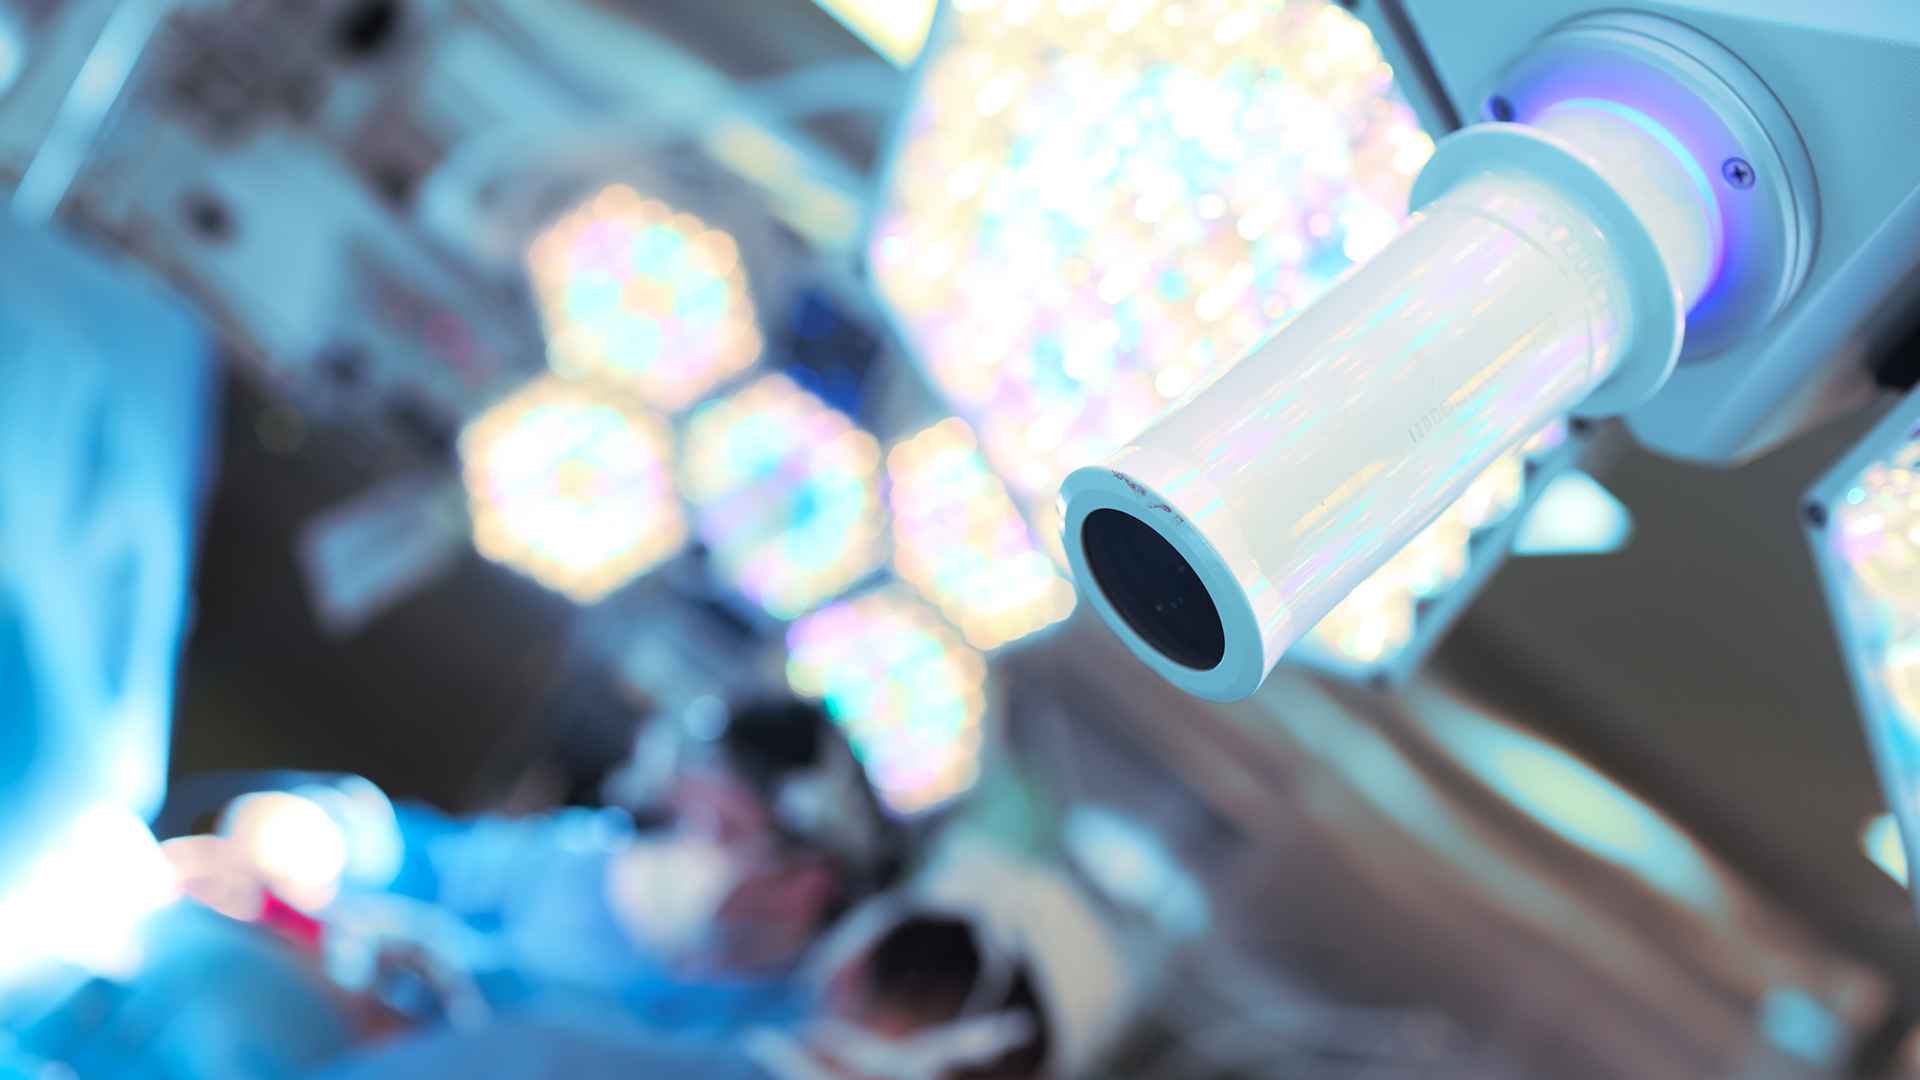 Blurred surgeons and focused surgery lamp in operating room